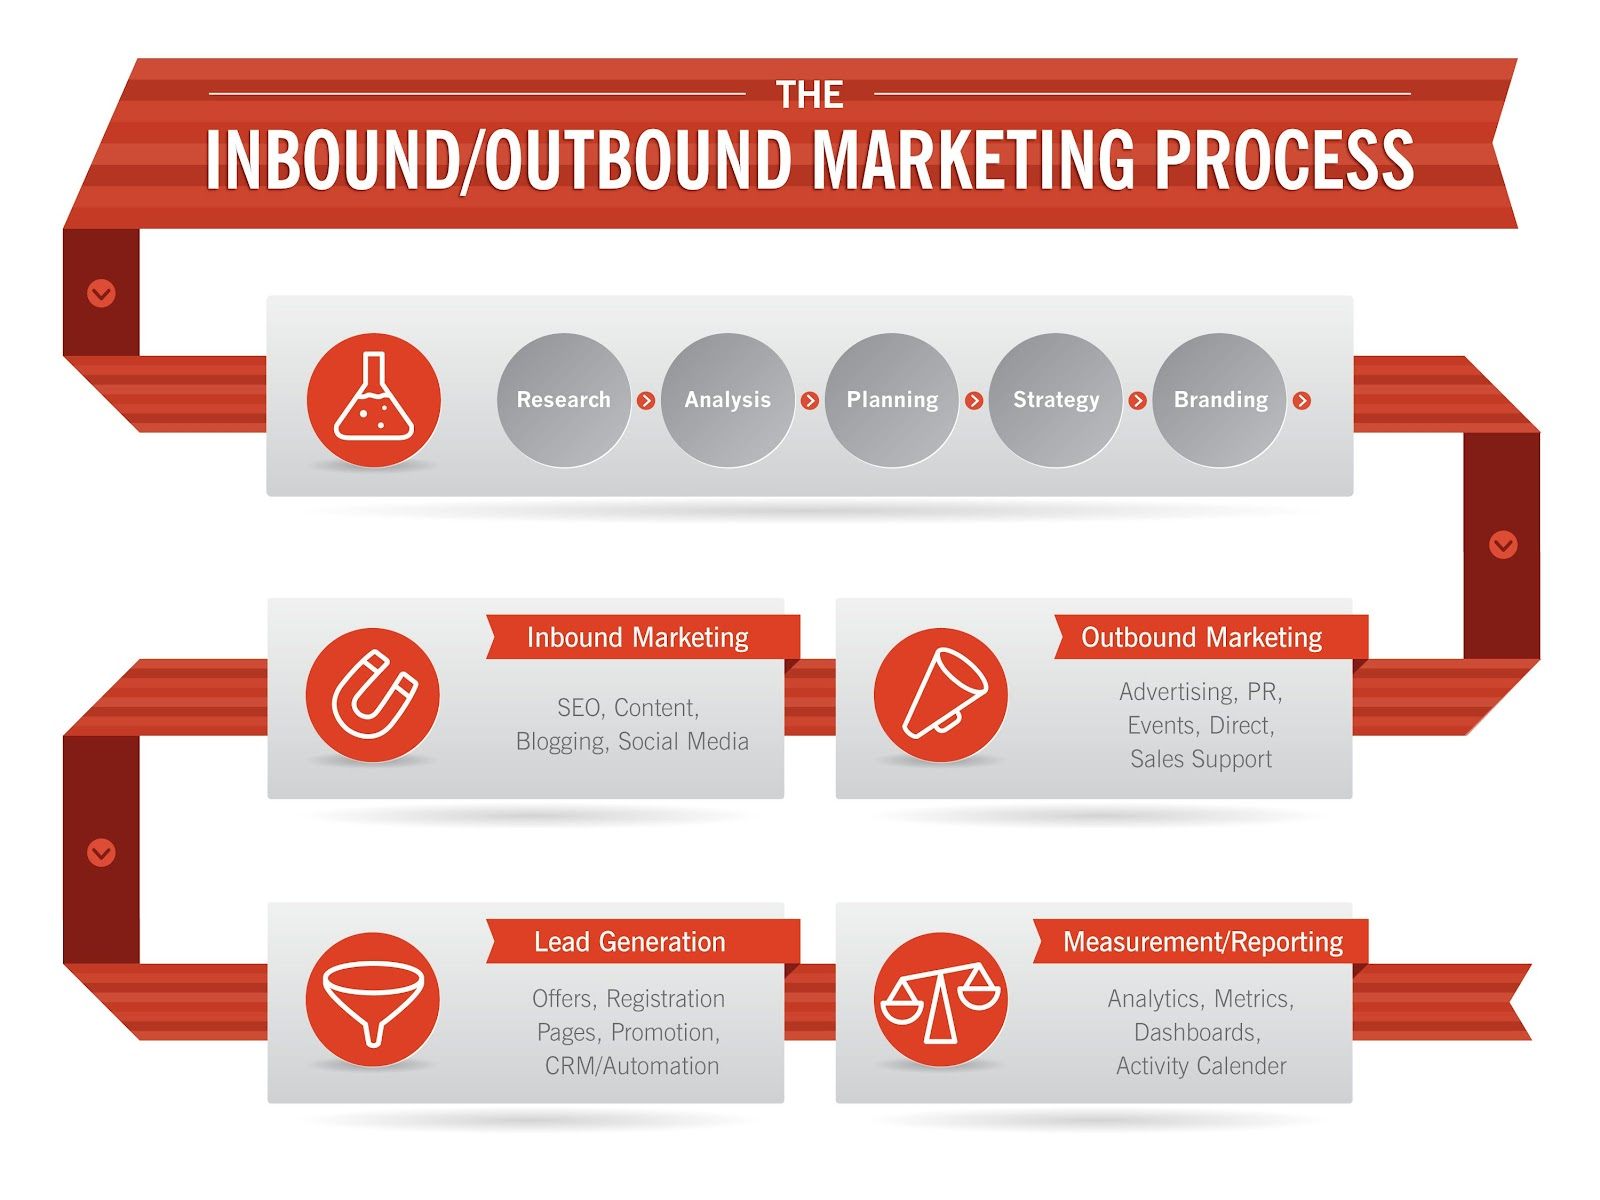 inbound lead generation - overview of the inbound and outbound marketing process